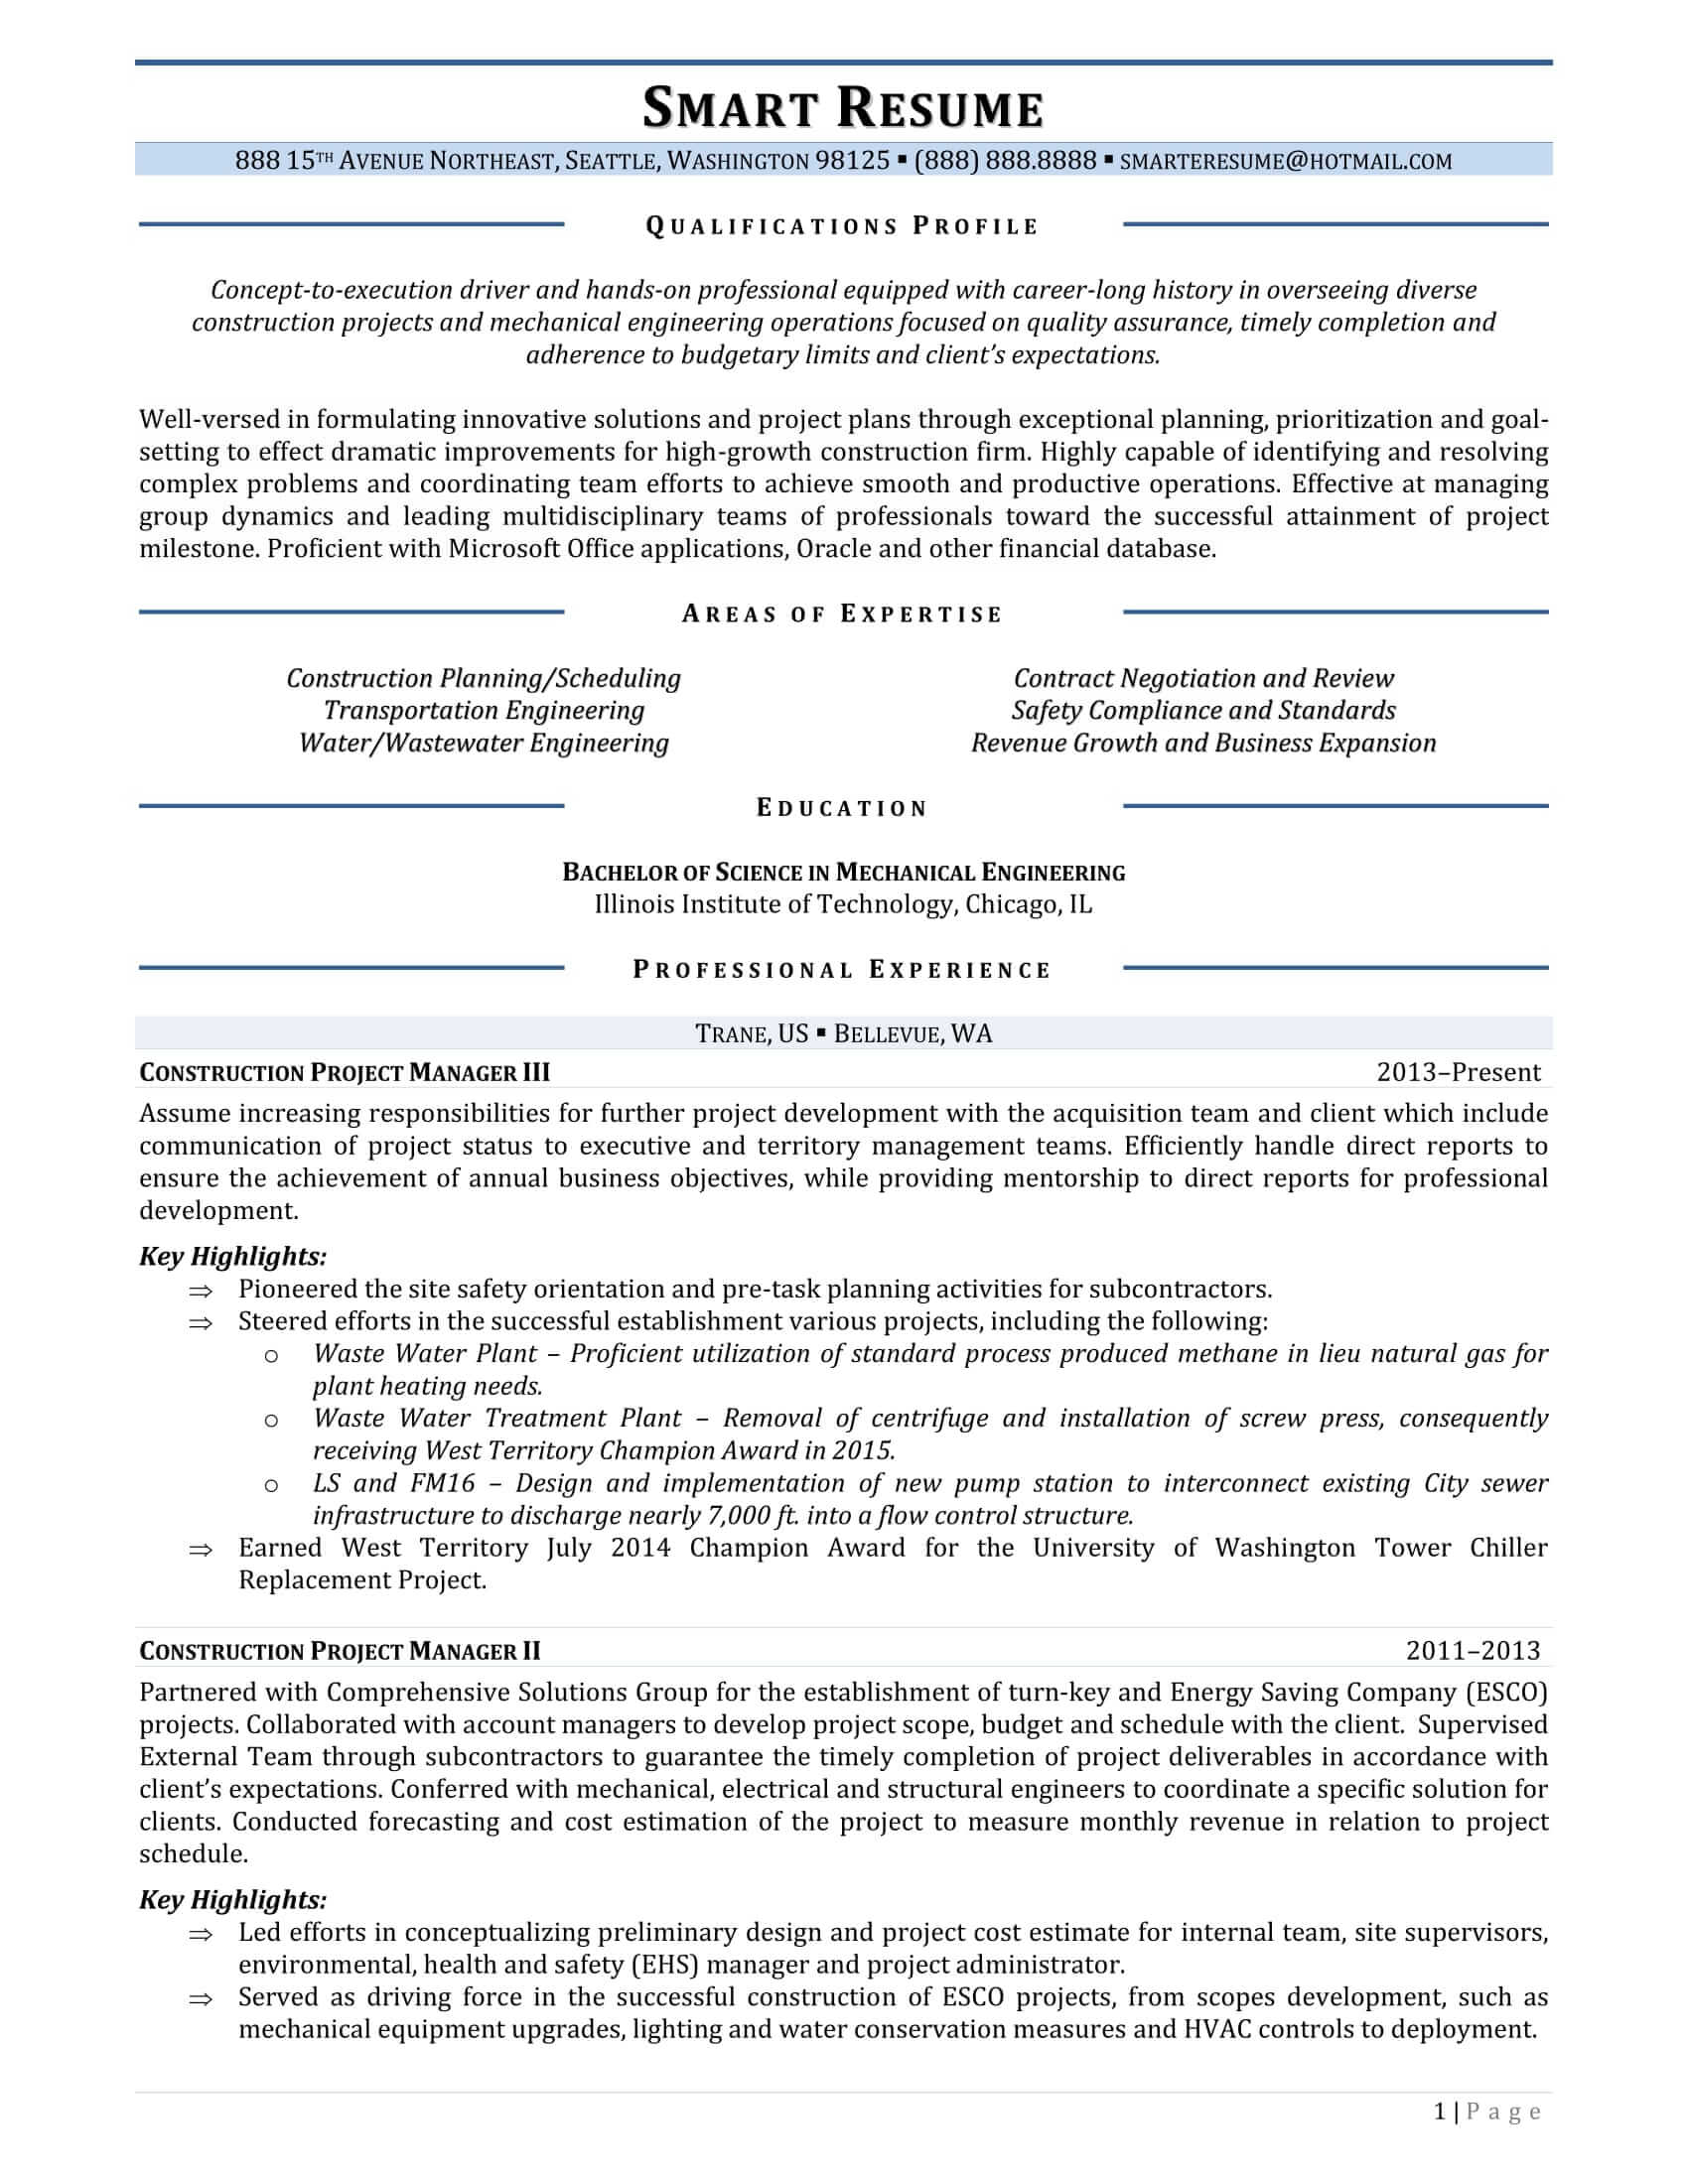 sample construction resume samples smartresume construction project manager resume sample